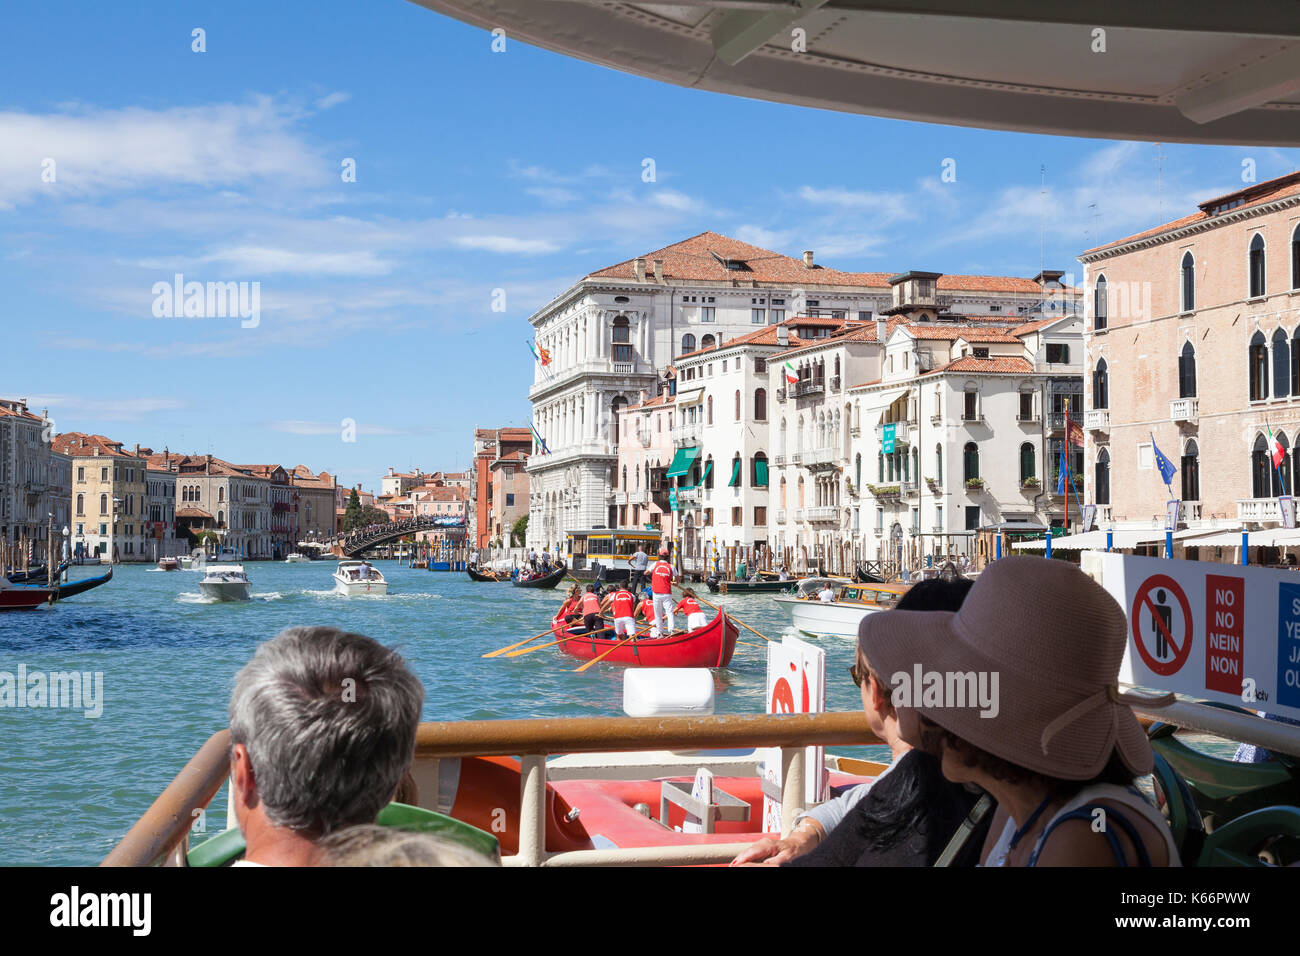 Tourists on a Vaporetto travelling up the Grand Canal, Venice, Italy from a first person point of view looking over the bows. Team of Venetian rowers  - Stock Image